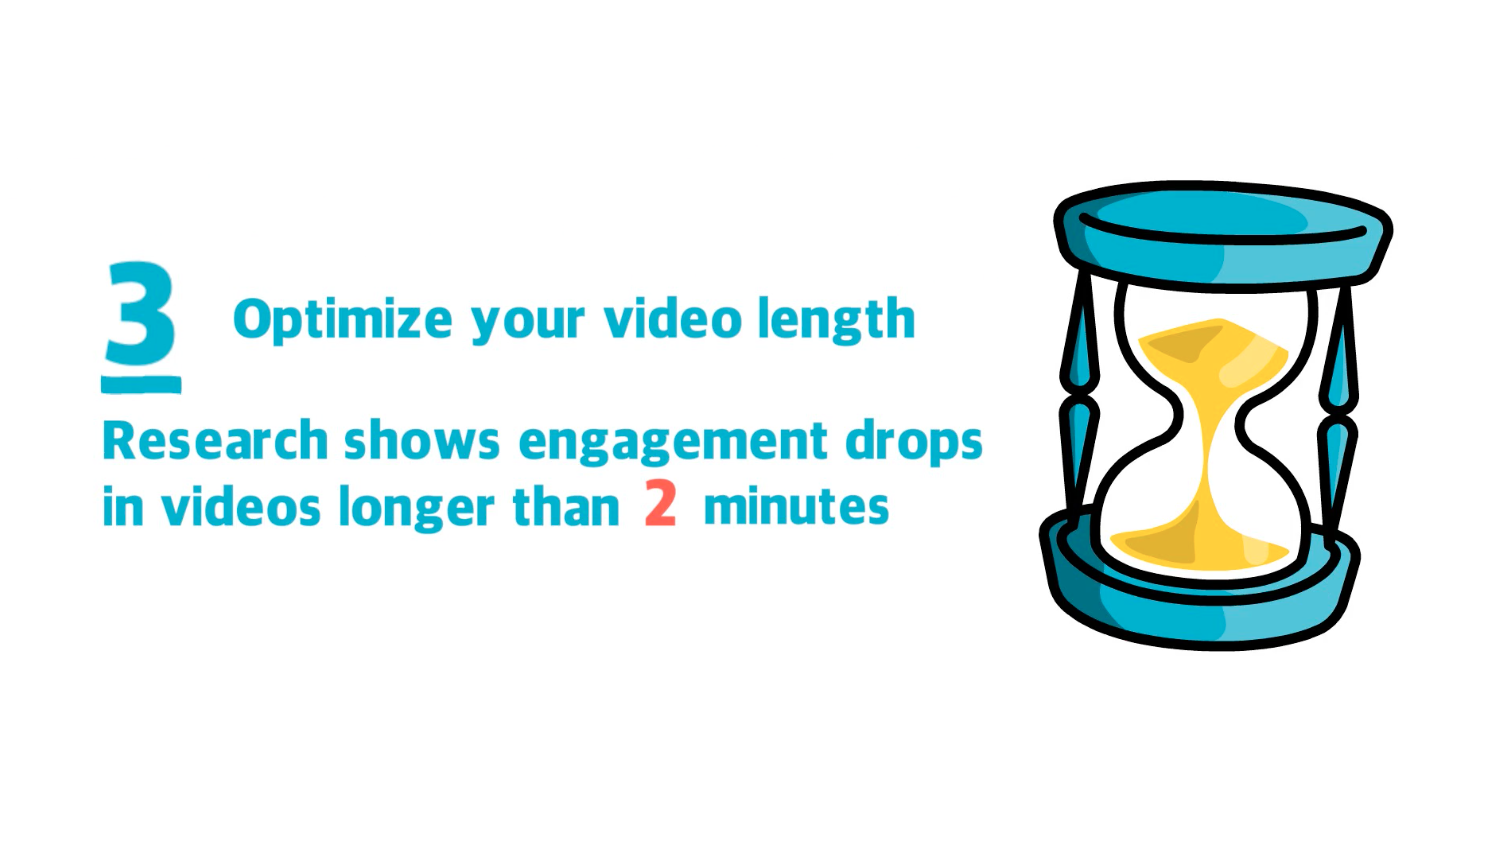 For improved video results optimize the length of your video for your audience and platform